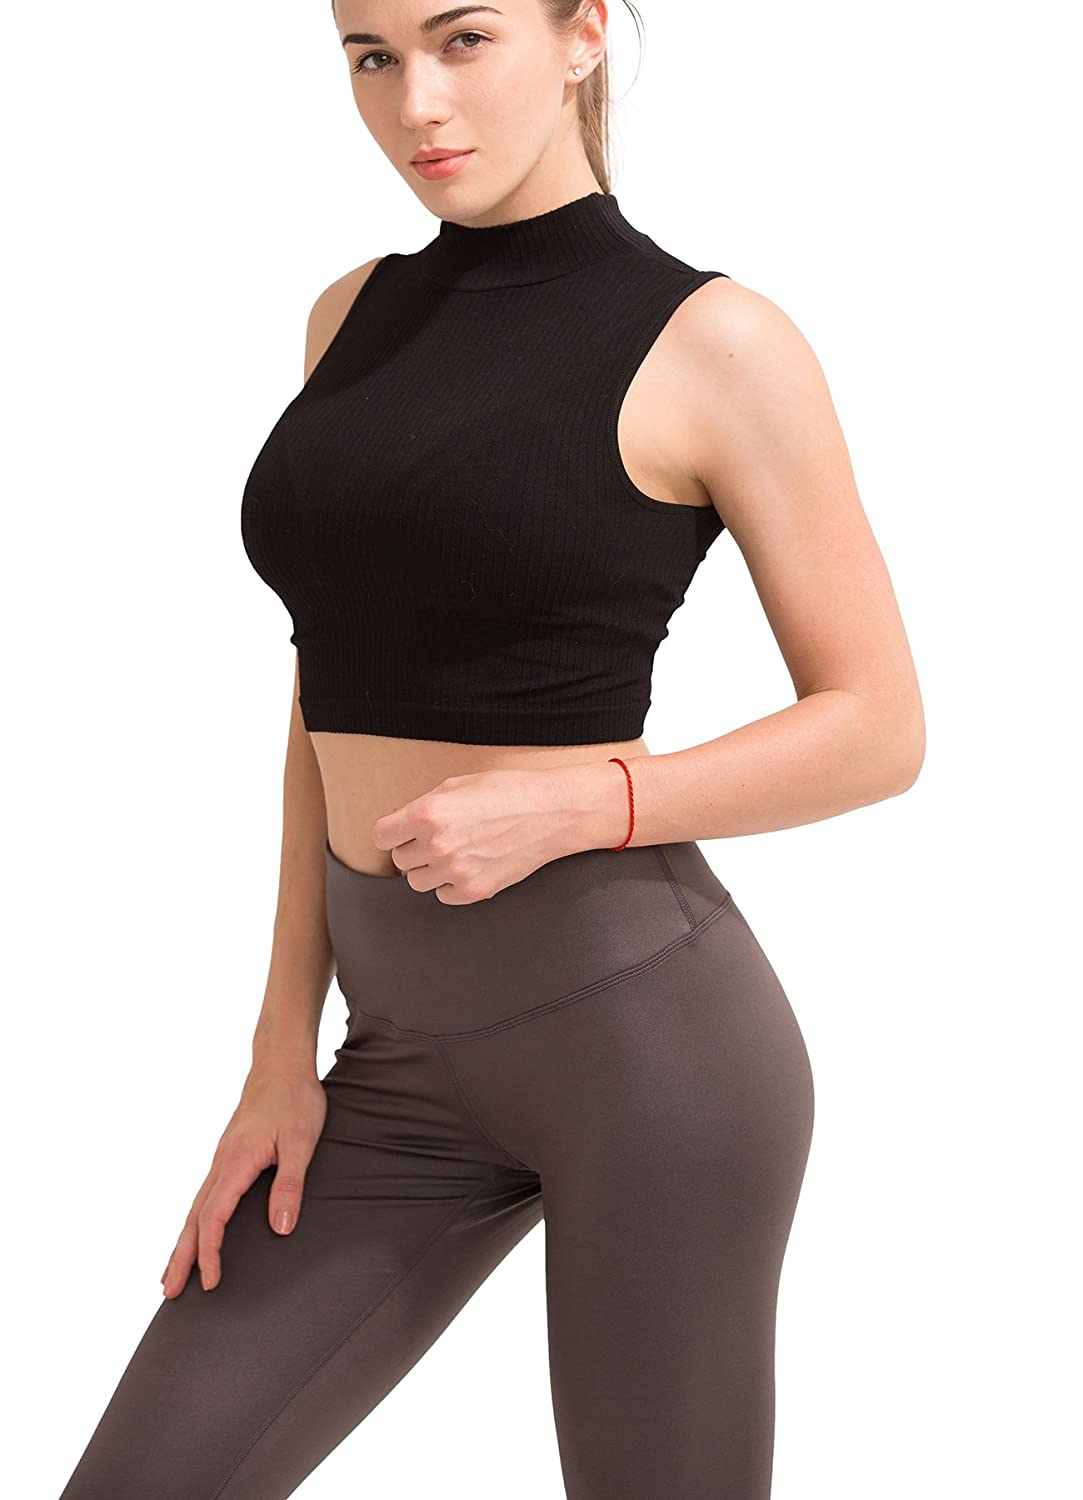 90df2a97783 Amazon.com  PULI Women s Fitted Crop Top Seamless Sleeveless Turtleneck  Shaping Tank Top Mock Turtleneck Shirt Tops with Stretch  Everything Else